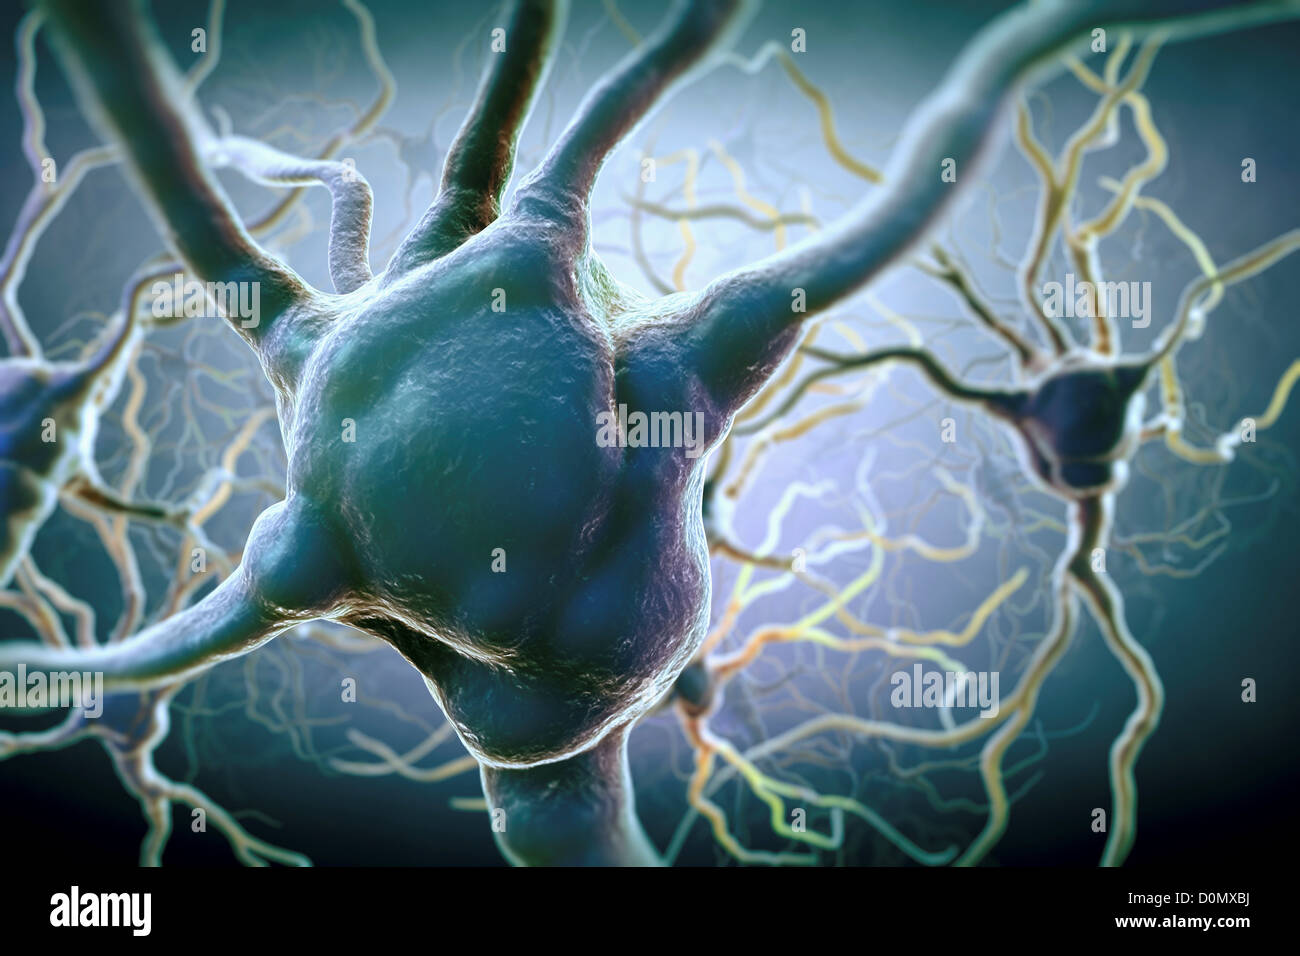 Neurons and extensions connecting to other neurons. - Stock Image